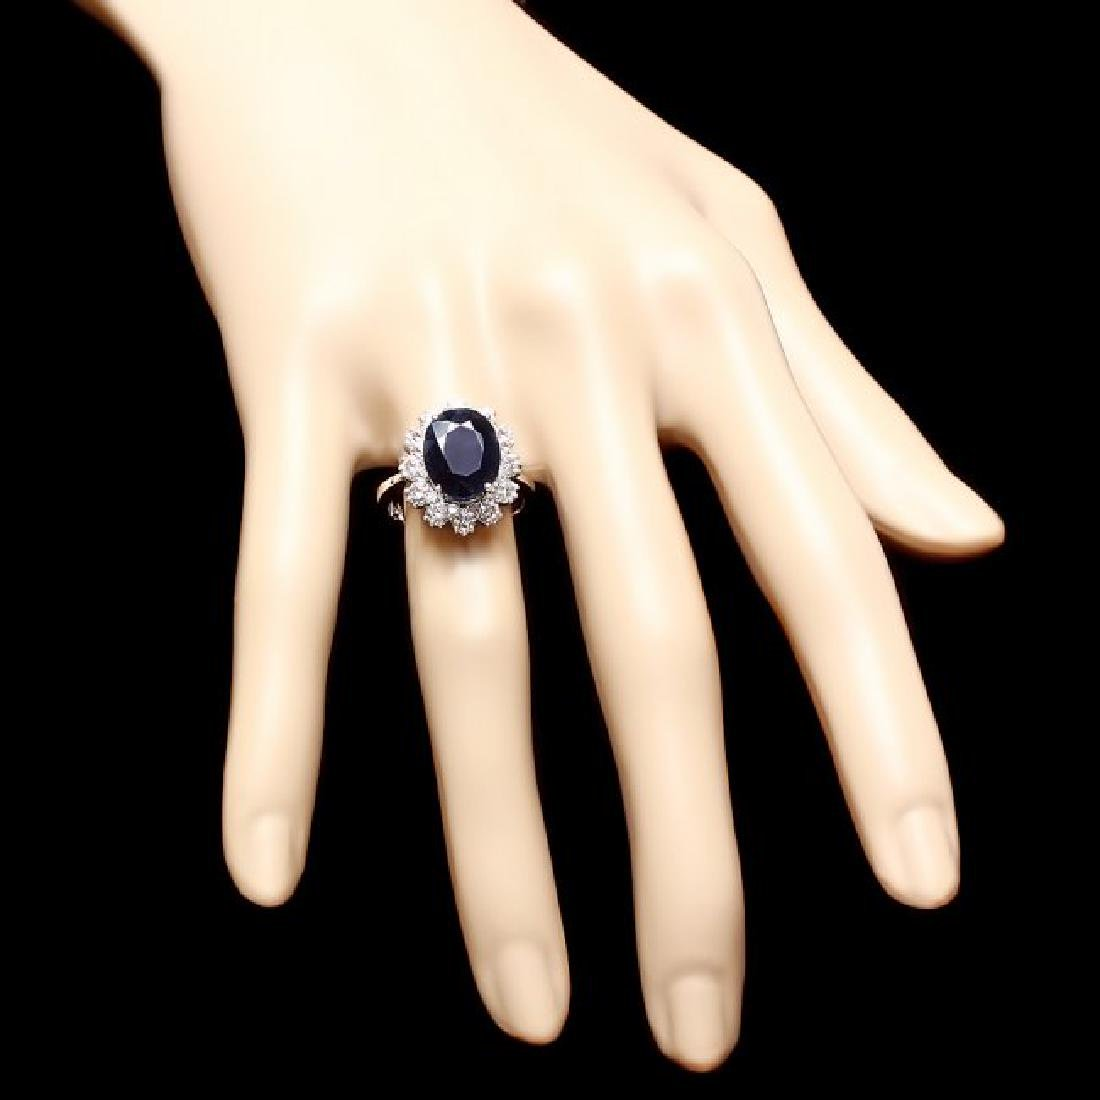 14k Gold 6.50ct Sapphire 1.25ct Diamond Ring - 4